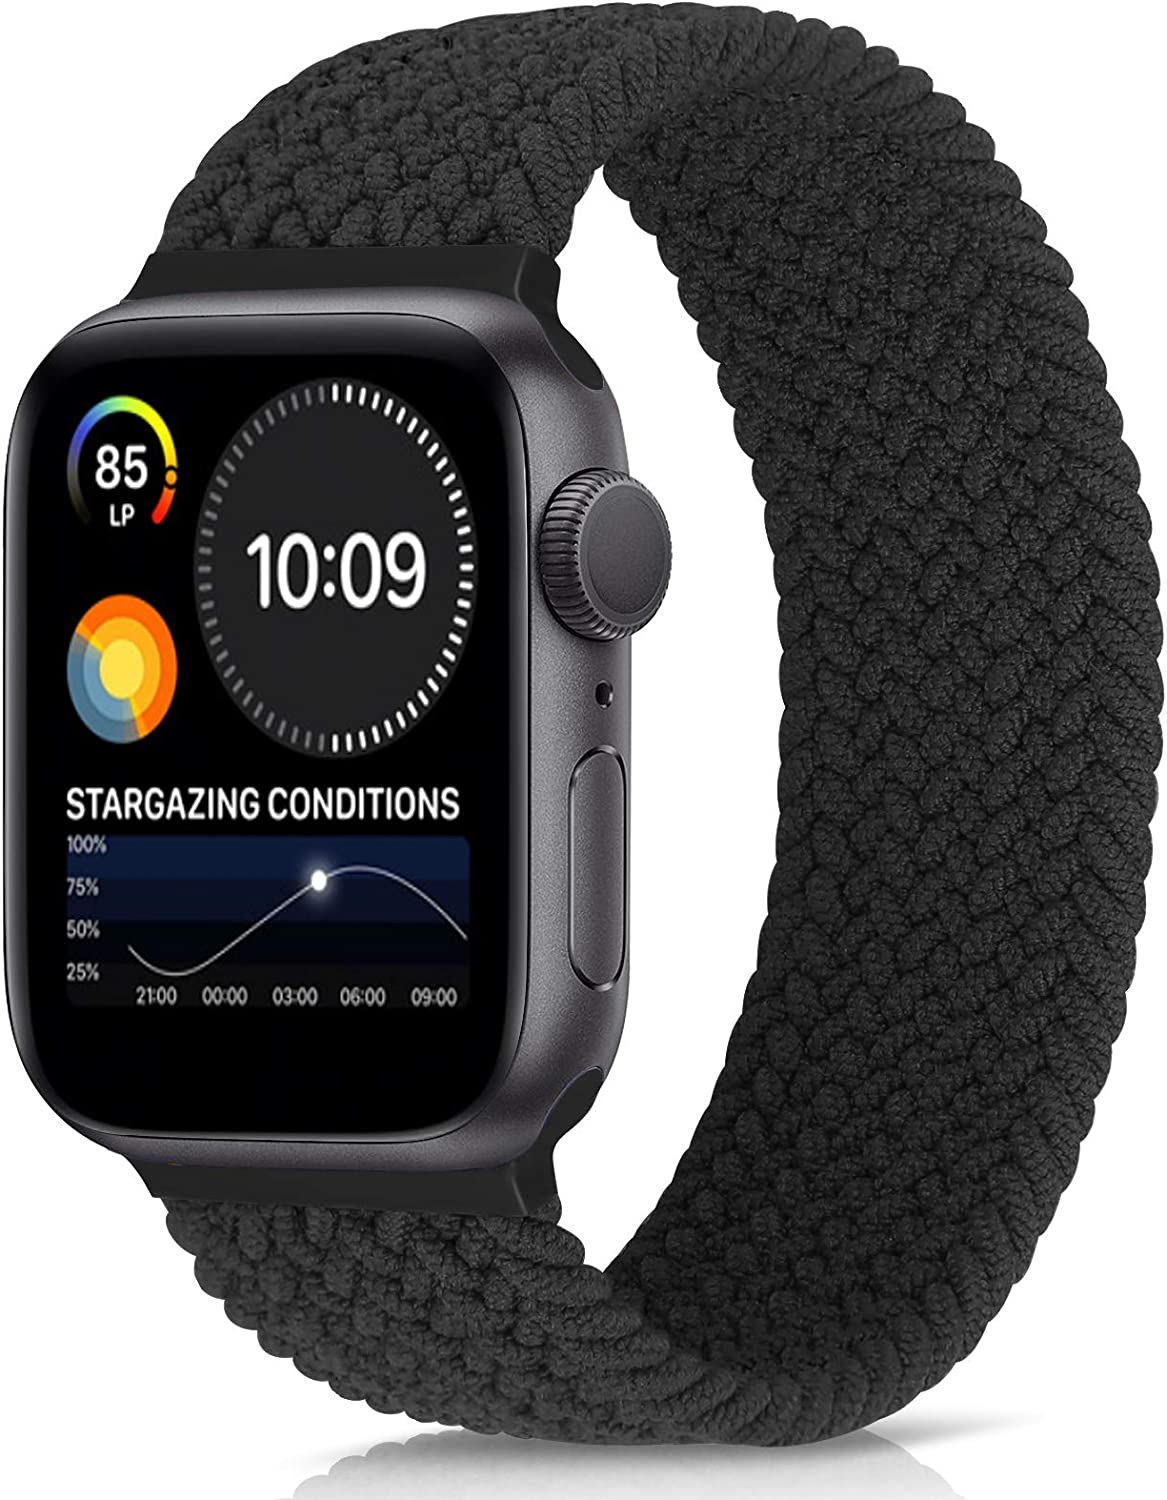 Unnite Braided Stretchy Solo Loop Band Compatible with Apple Watch 42mm 44mm, Sport Straps Nylon Woven Elastic Watch Bands Compatible for iWatch Series 6/5/4/3/2/1/SE Women Men (Black, 42mm/44mm:#6)